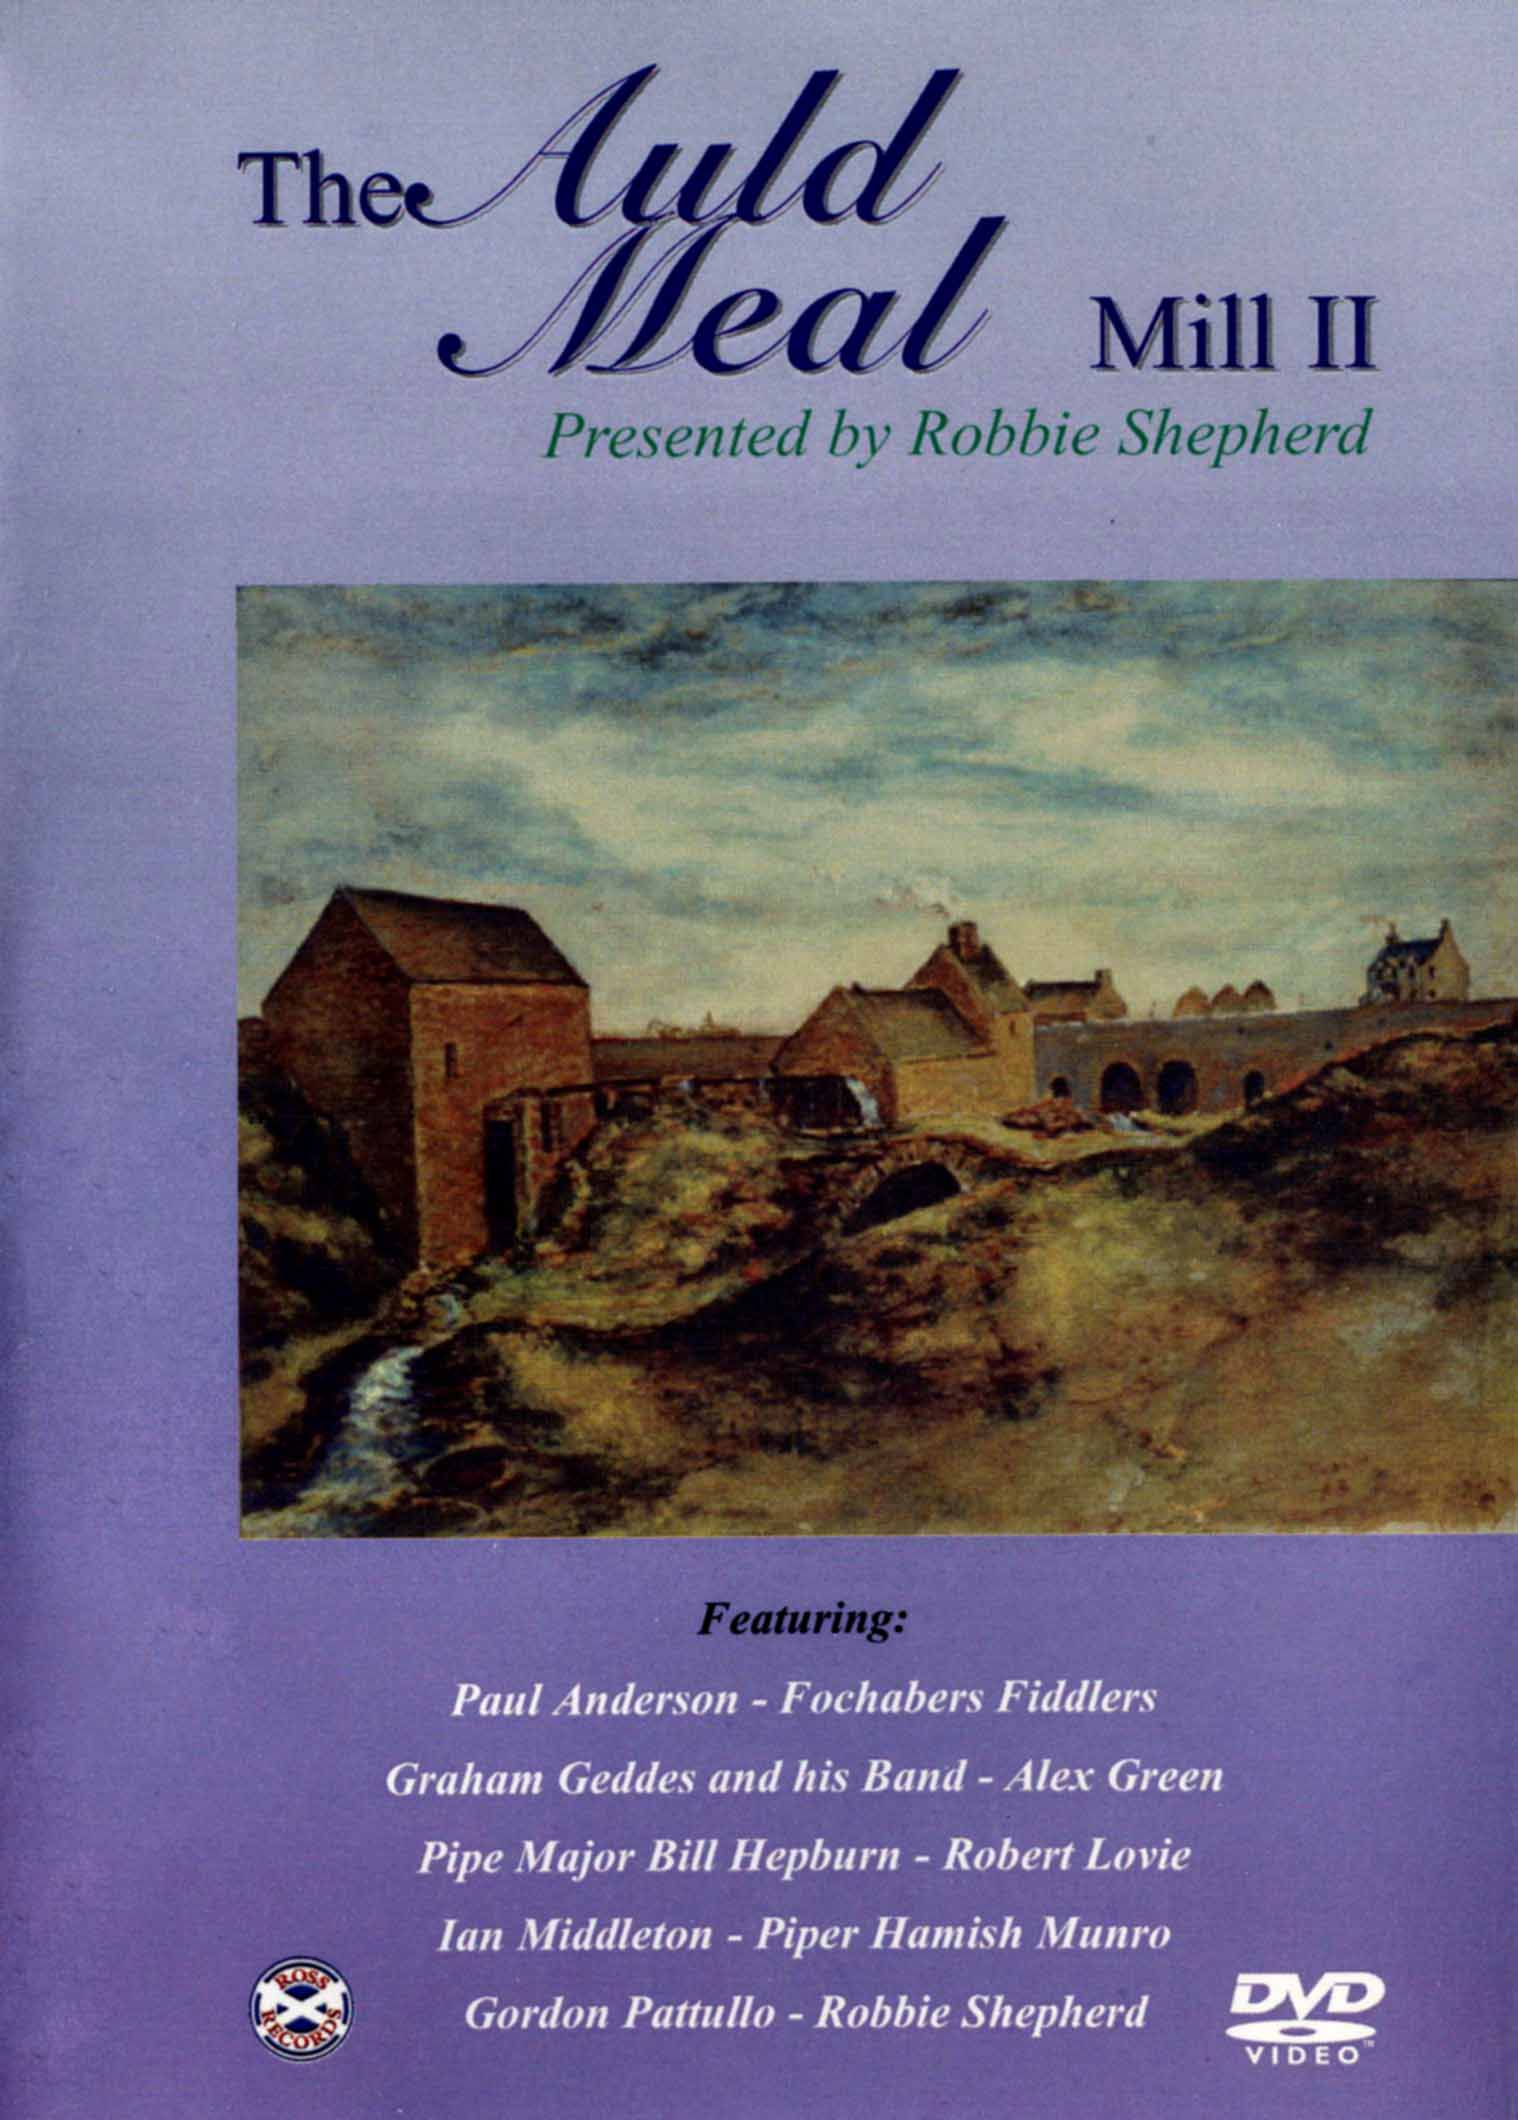 The Auld Meal: Mill II